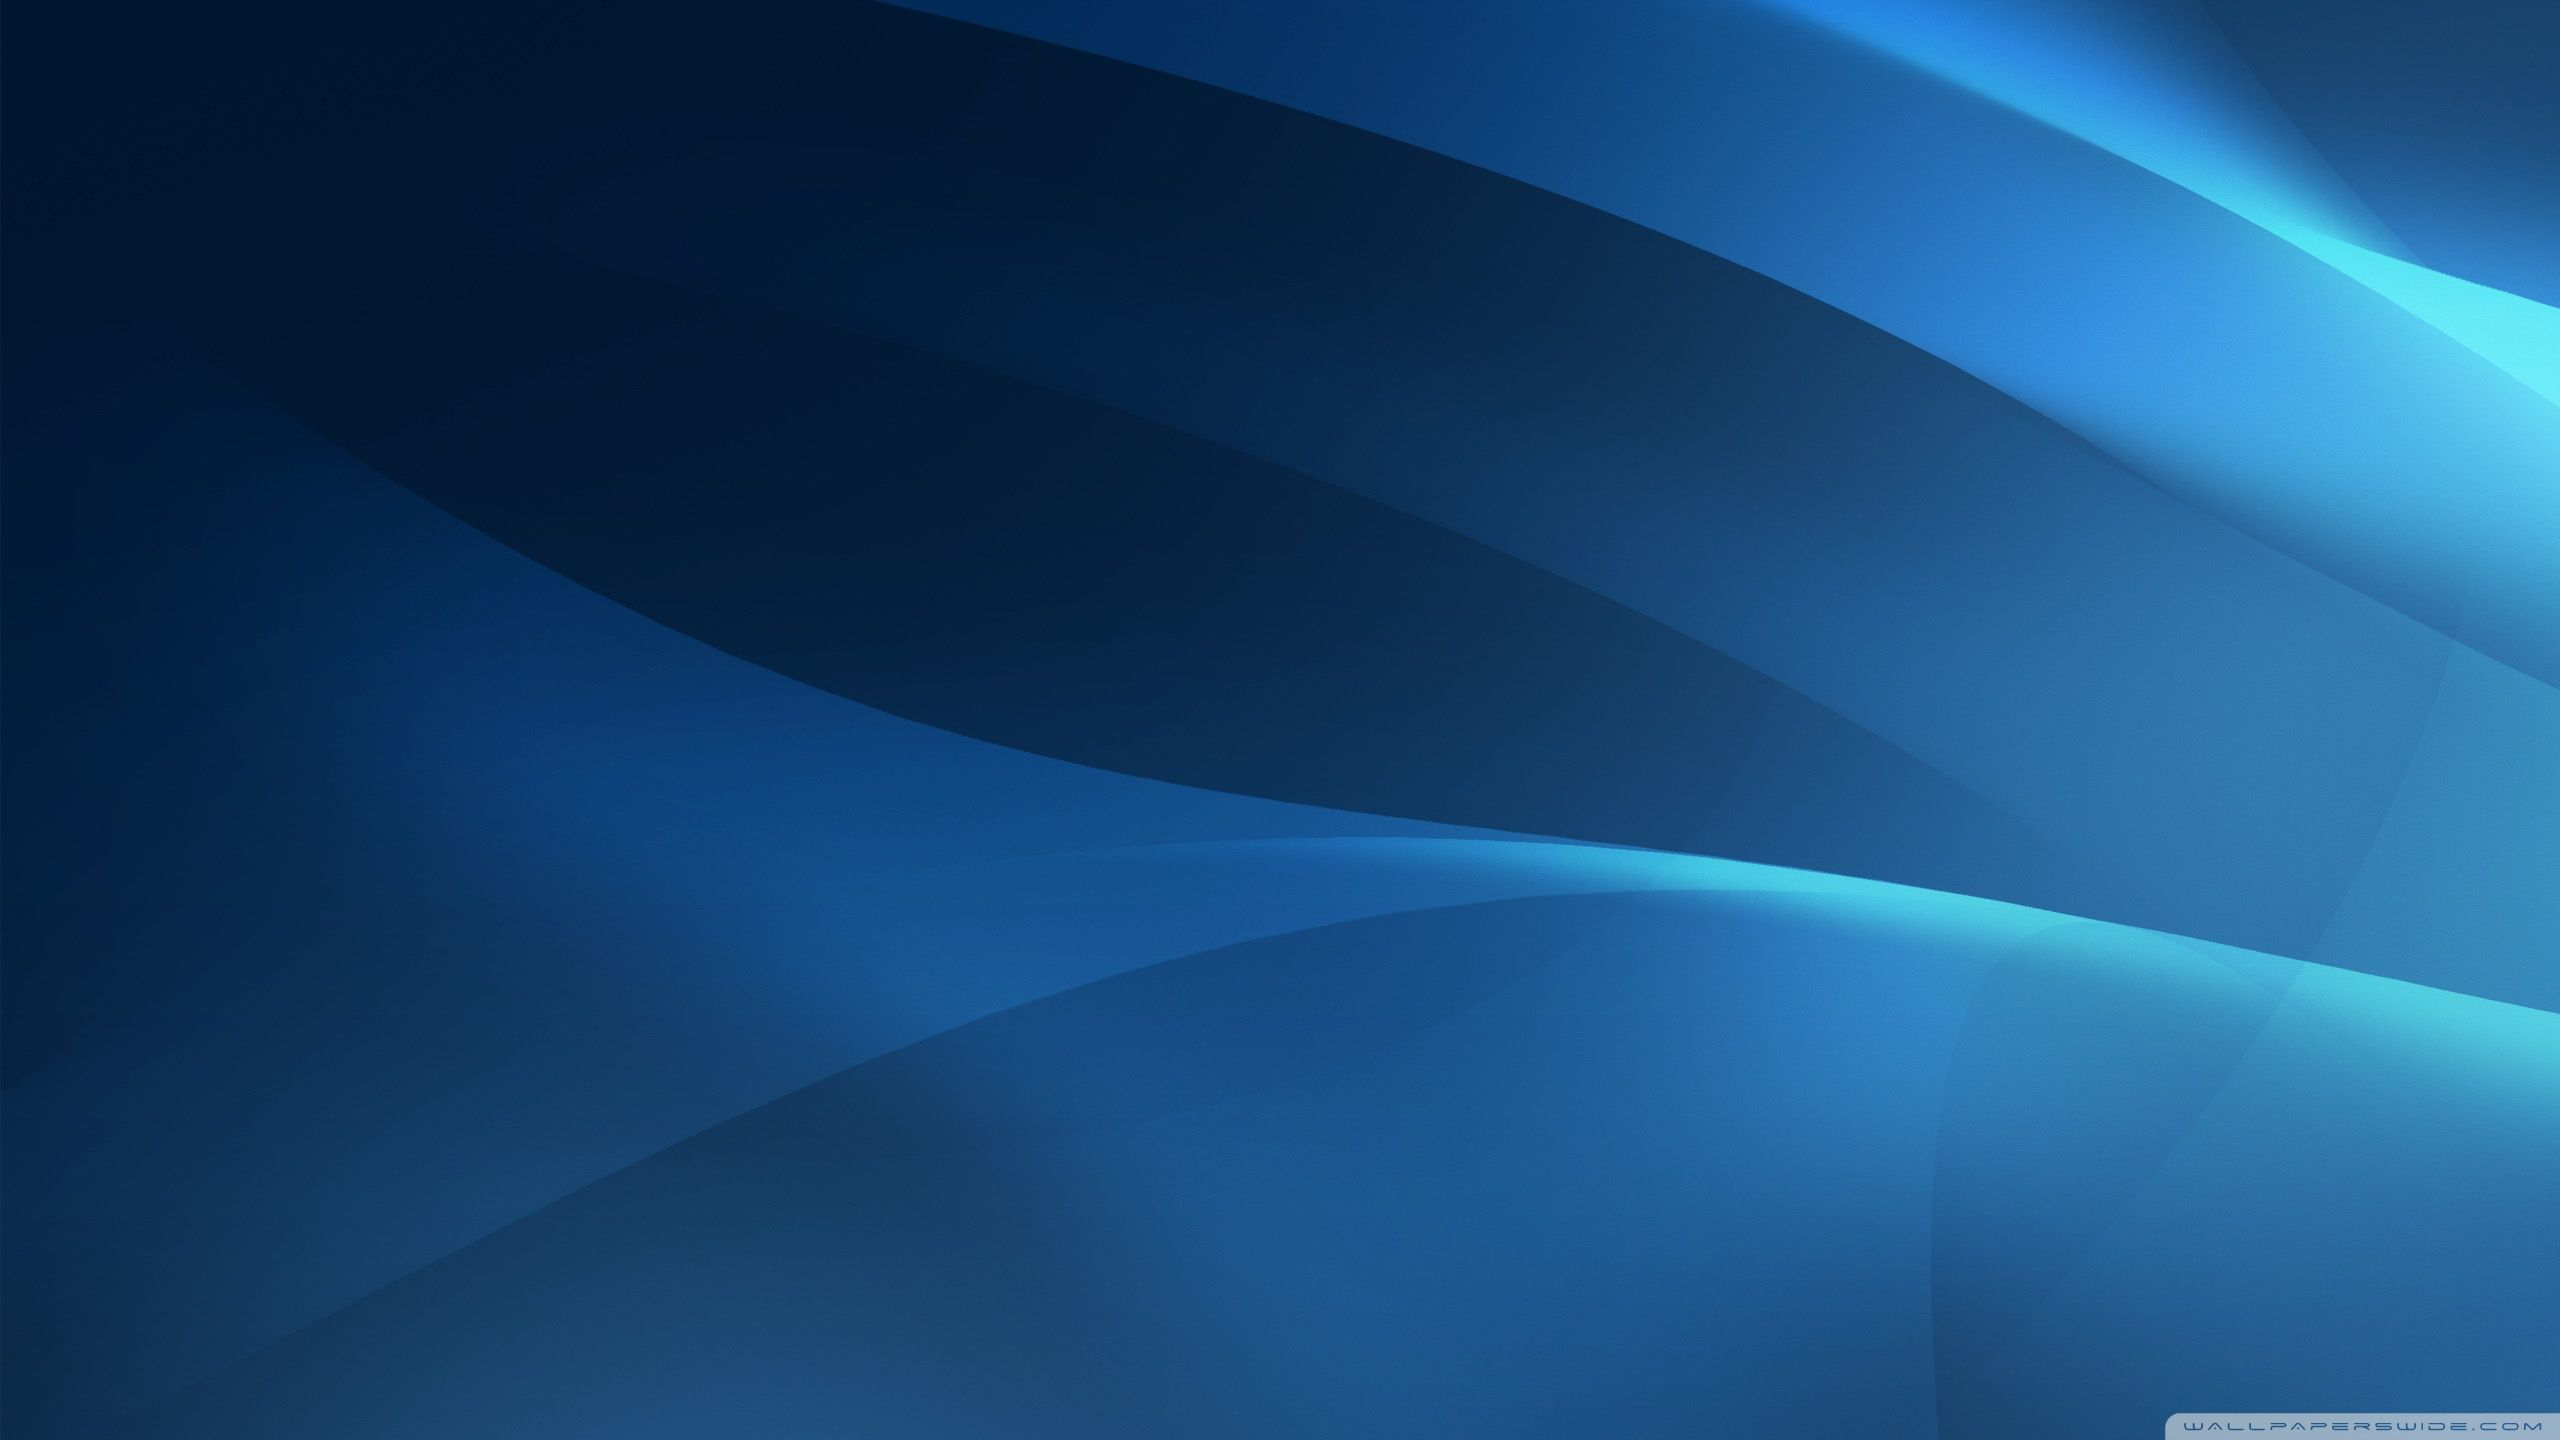 Hd Wallpaper Abstract Blue Hd 1080p 12 Hd Wallpapers Blue